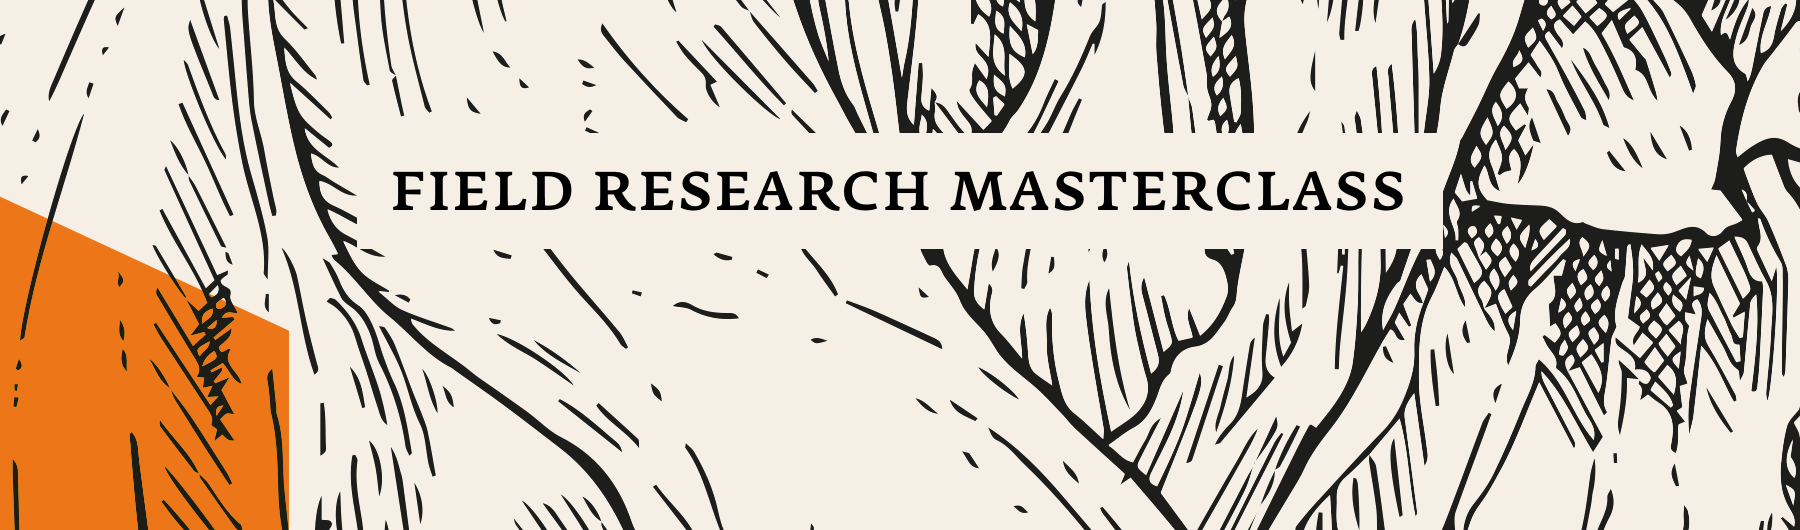 Clearleft Presents: Jan Chipchase - Field Research Masterclass, May 30